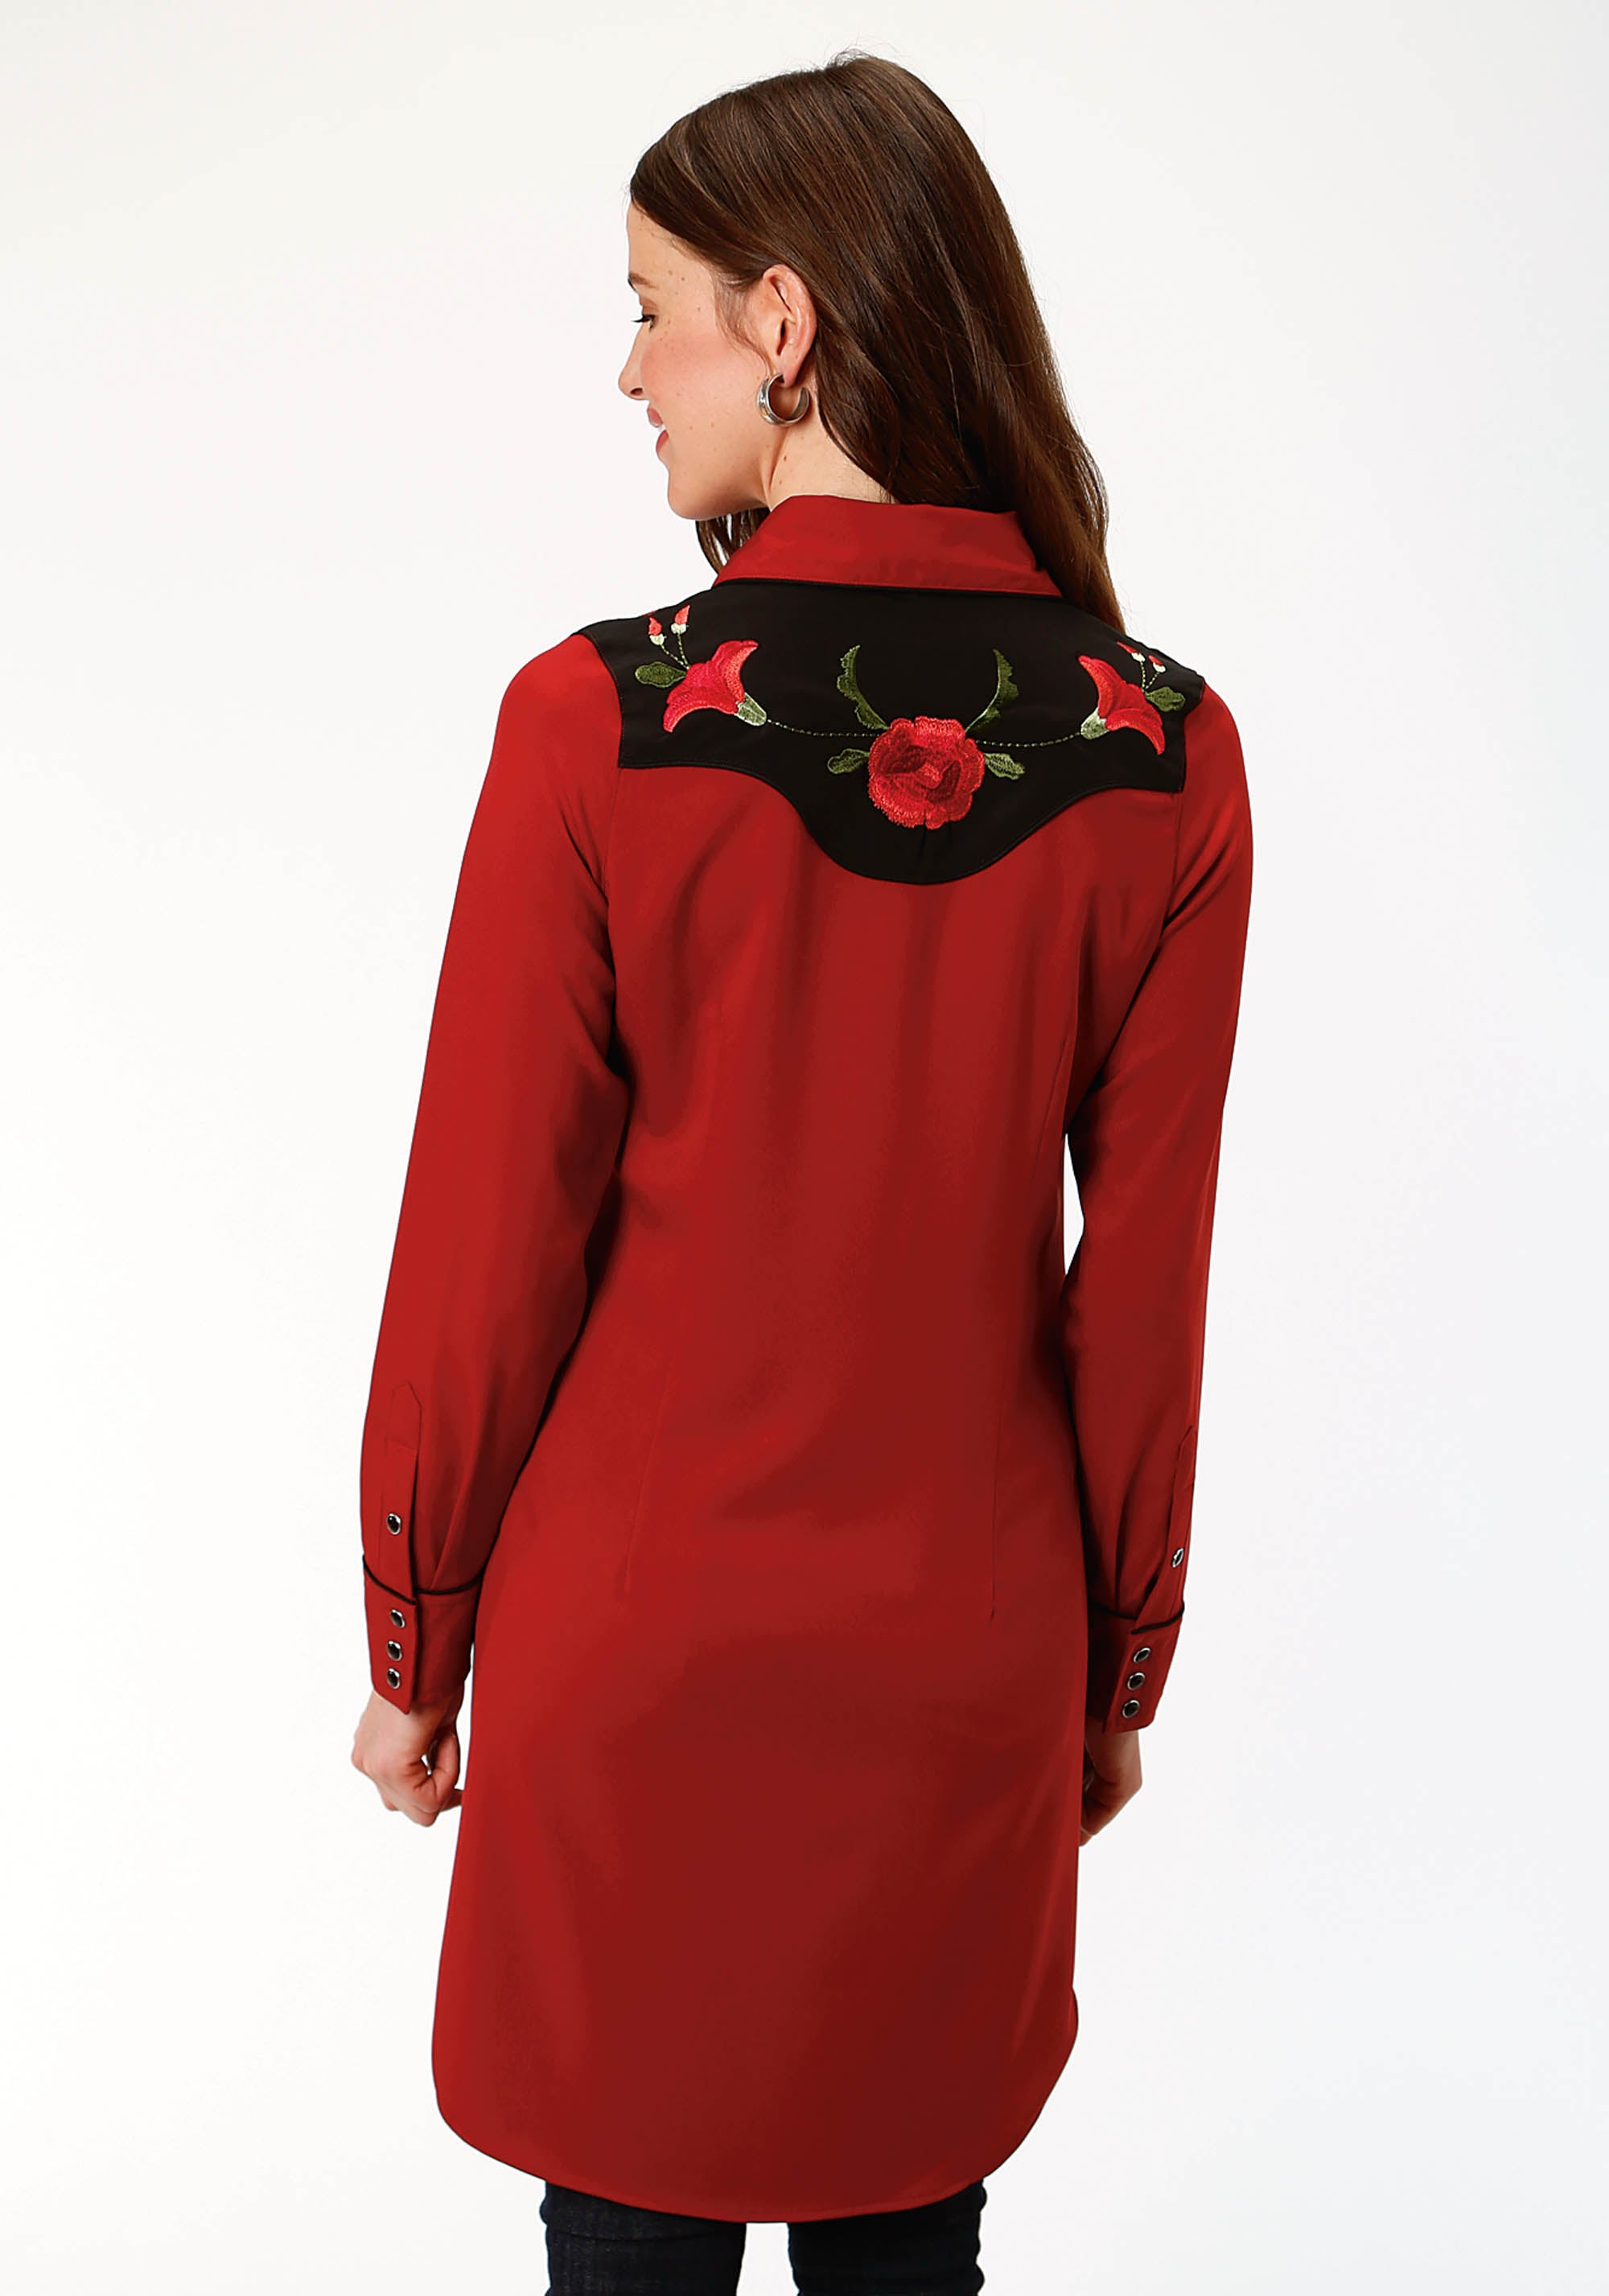 ROPER WOMENS RED 1495 POLY SPANDEX RETRO DRESS OLD WEST COLLECTION LONG SLEEVE DRESS